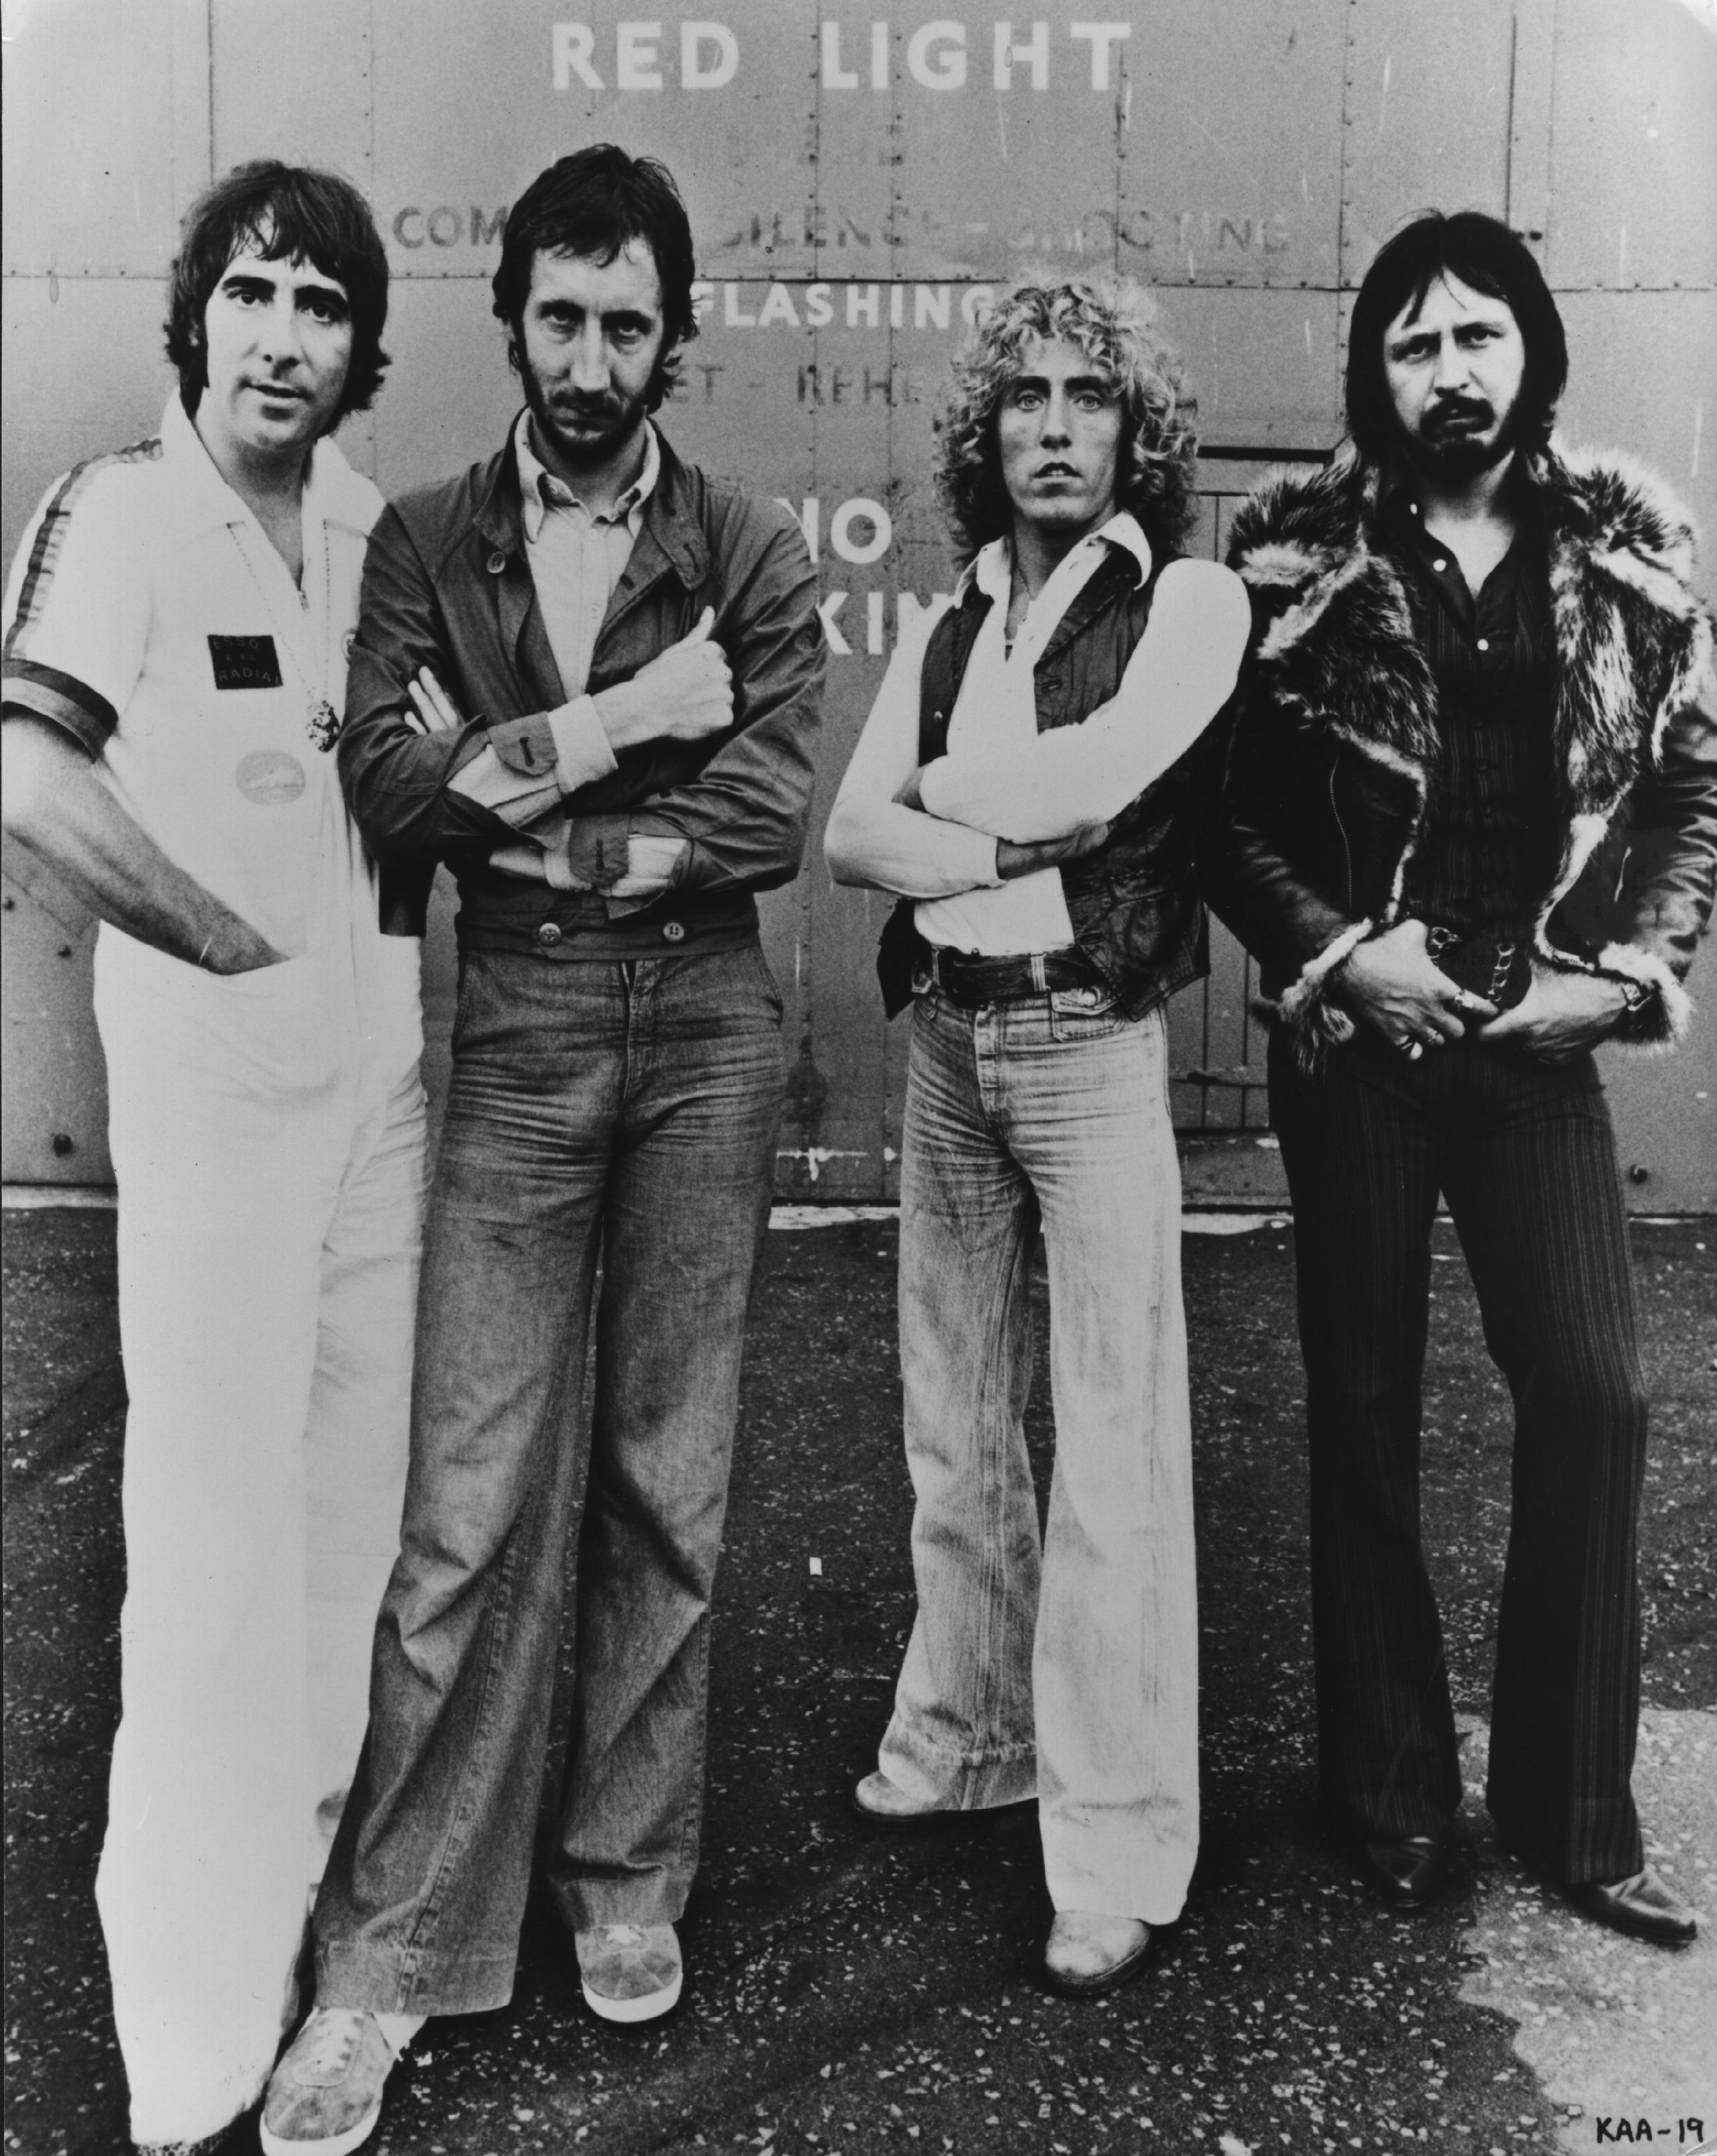 British rock group The Who, comprising of, from left to right; Keith Moon (1947 - 1978), Pete Townshend, Roger Daltrey and John Entwistle (1944 - 2002). The group are currently working on a film, 'The Kids Are Alright', which looks back at fifteen years of The Who on the road, in recording studios and interviews.    (Photo by Keystone/Getty Images)